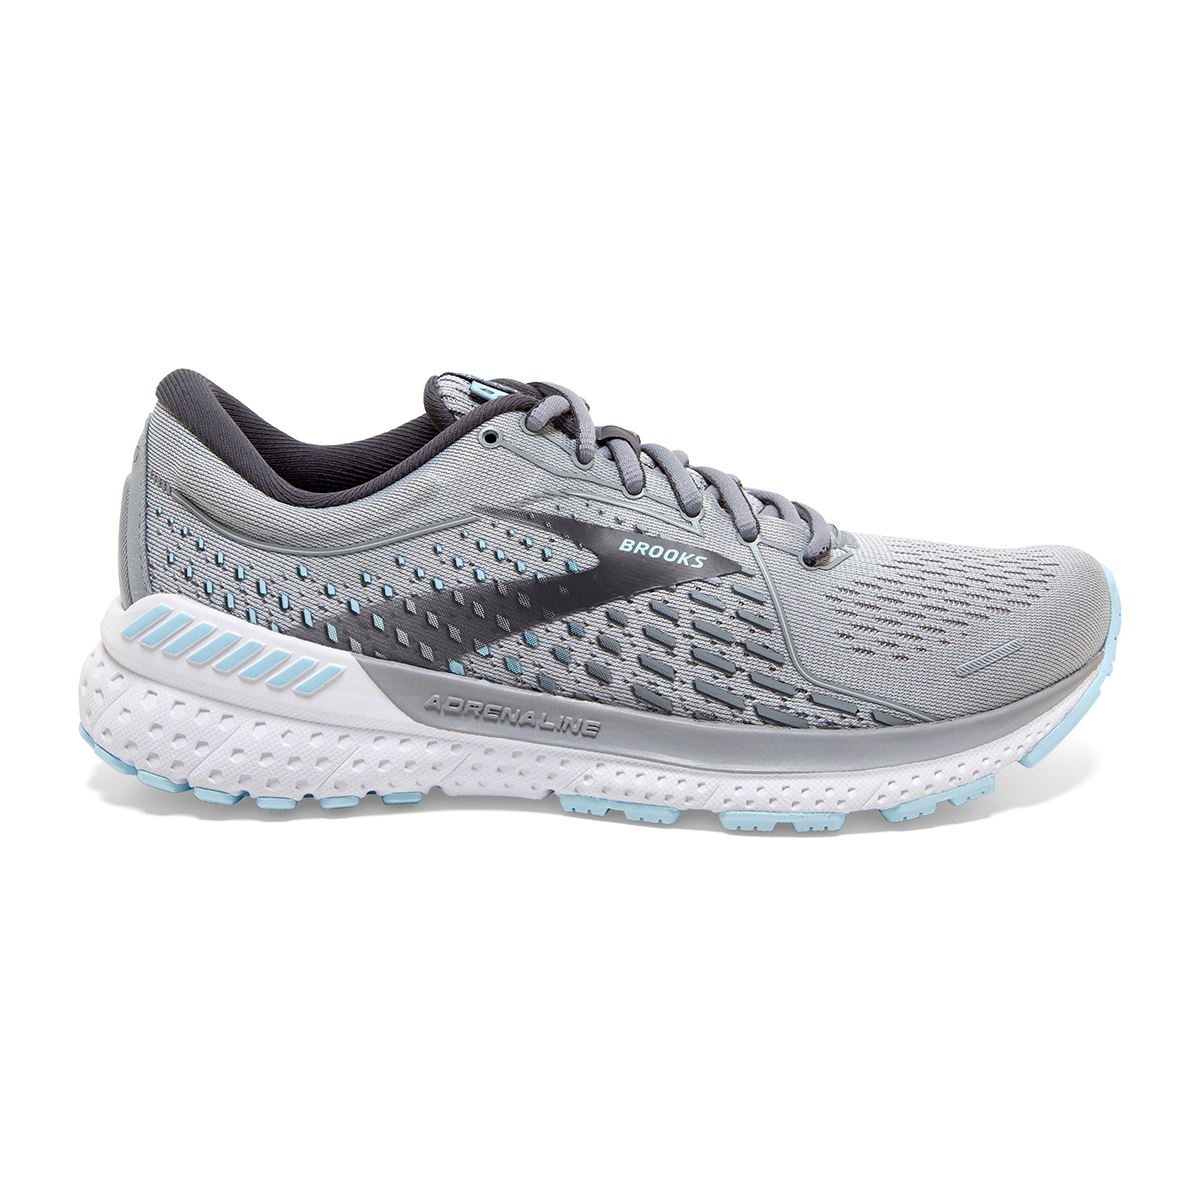 Women's Brooks Adrenaline GTS 21 Running Shoe - Color: Oyster/Alloy/Light Blue - Size: 5 - Width: Wide, Oyster/Alloy/Light Blue, large, image 1